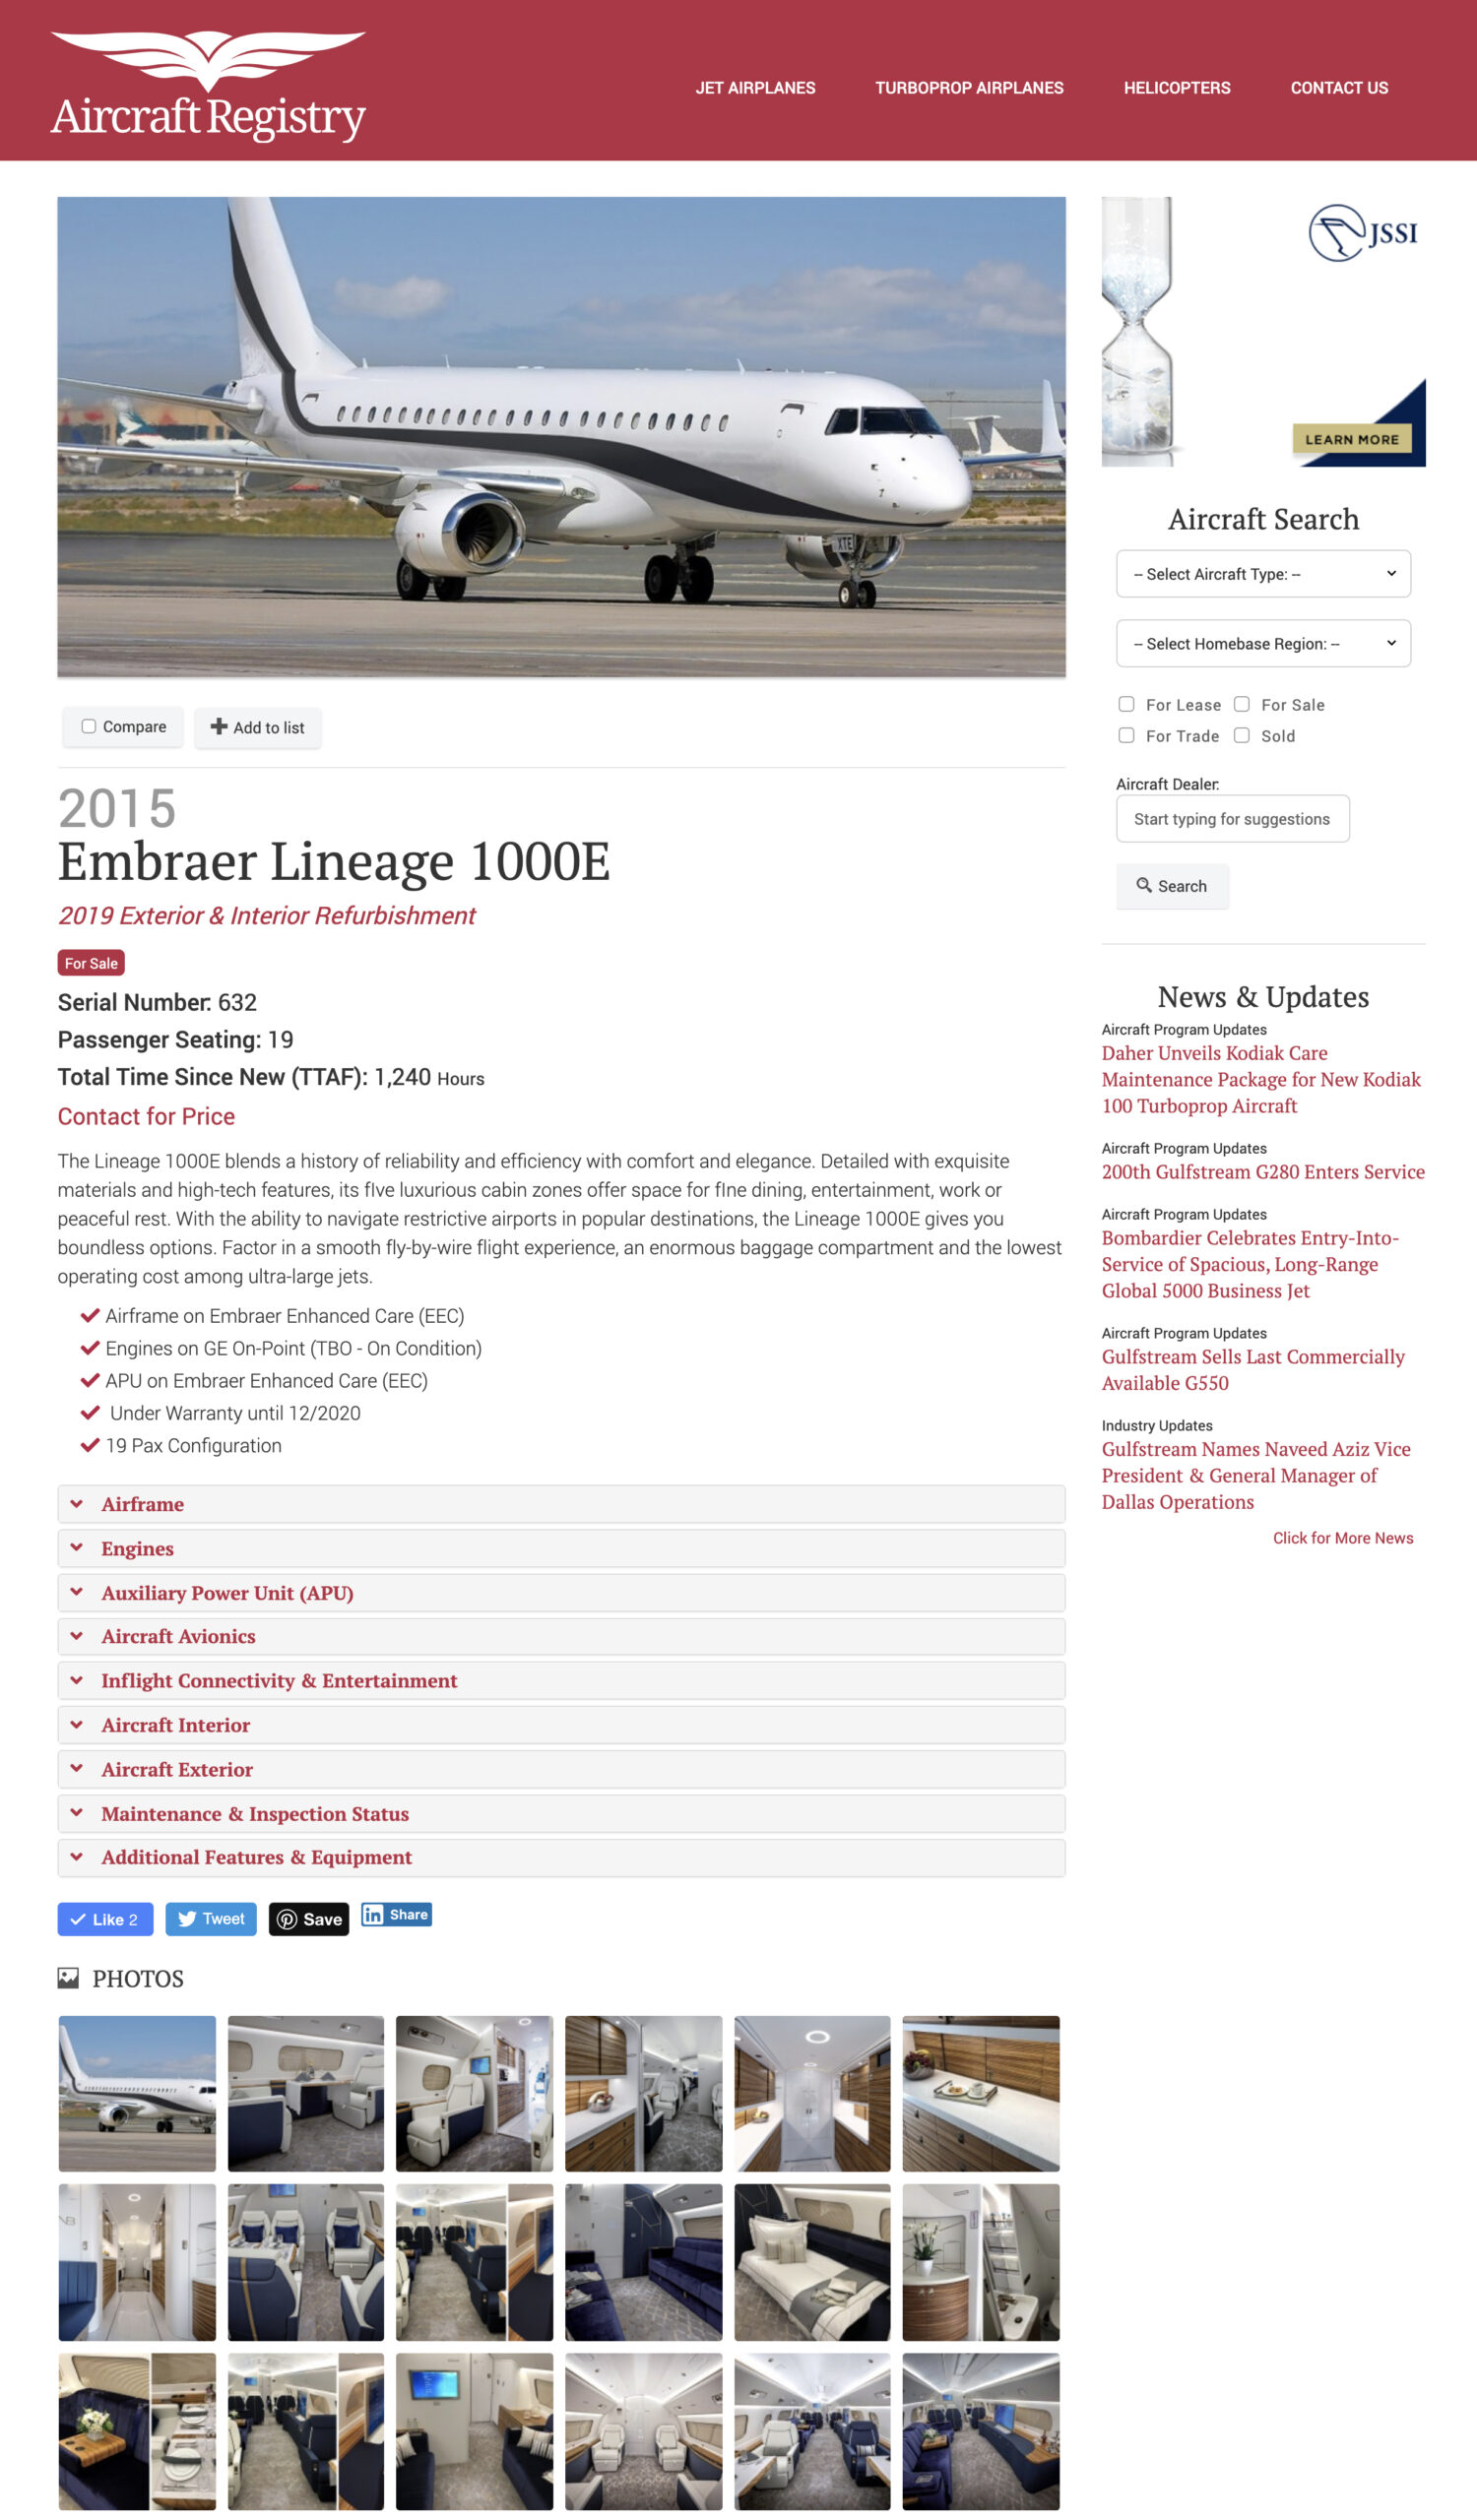 Aircraft Registry - Embraer Lineage 1000E